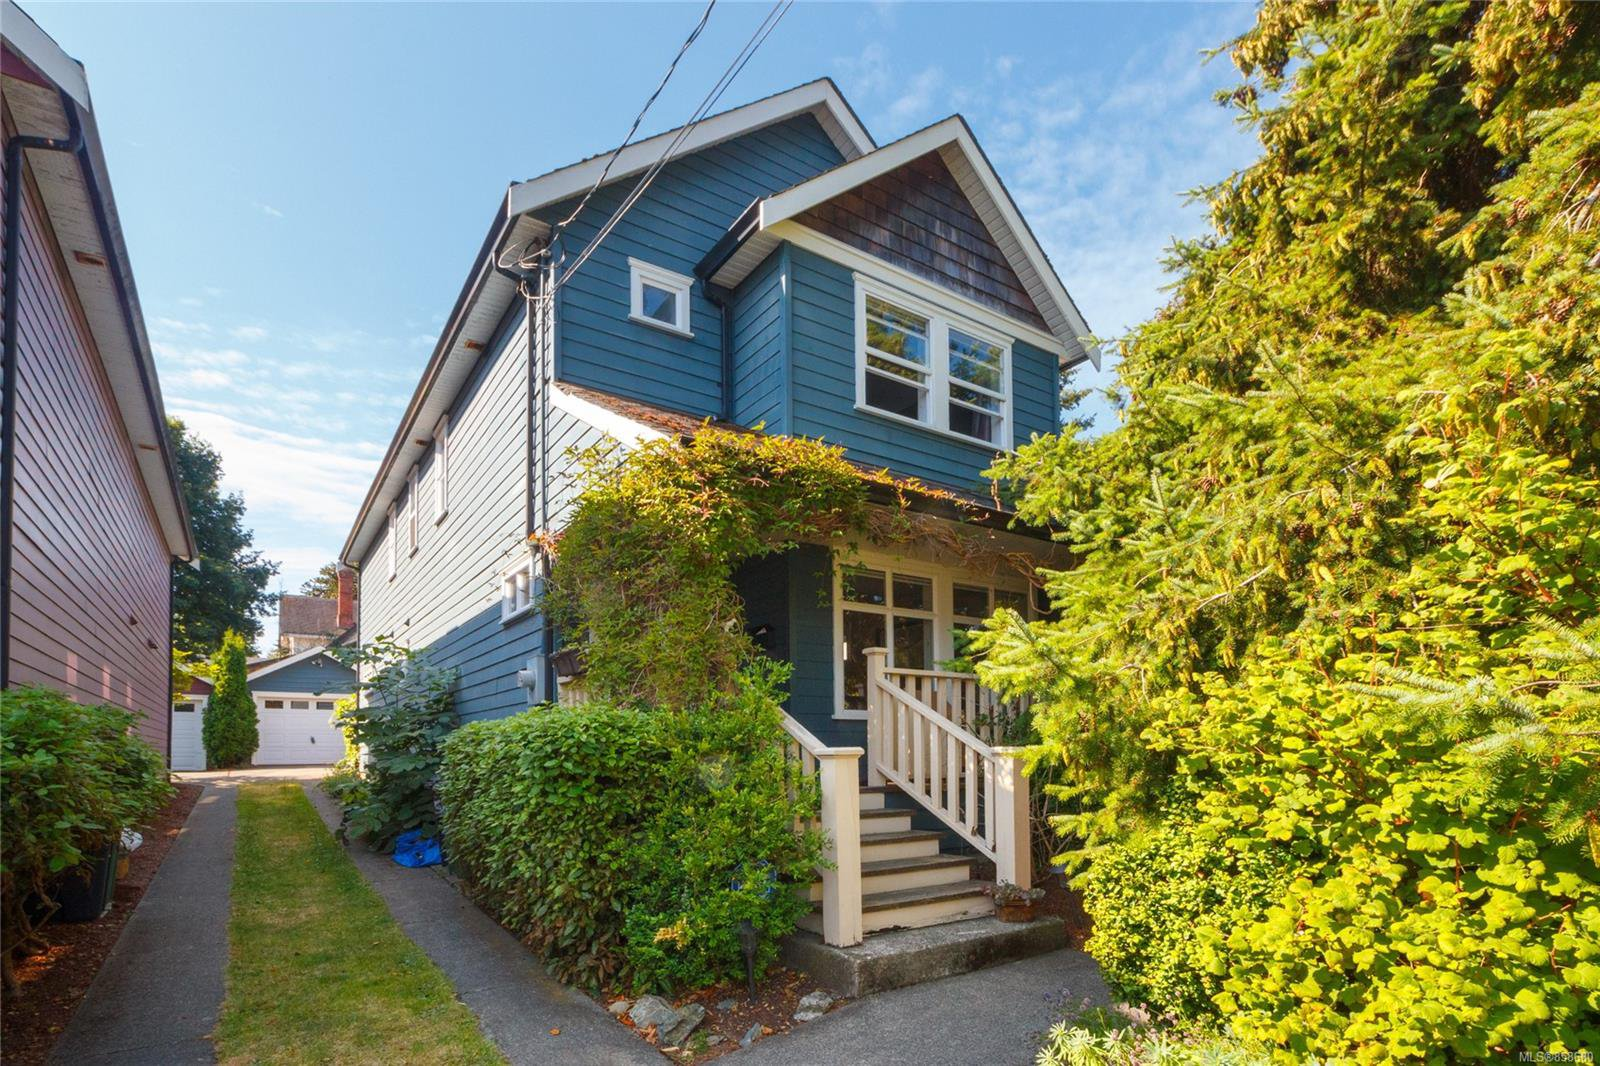 Main Photo: 1317 Balmoral Rd in : Vi Fernwood House for sale (Victoria)  : MLS®# 858680